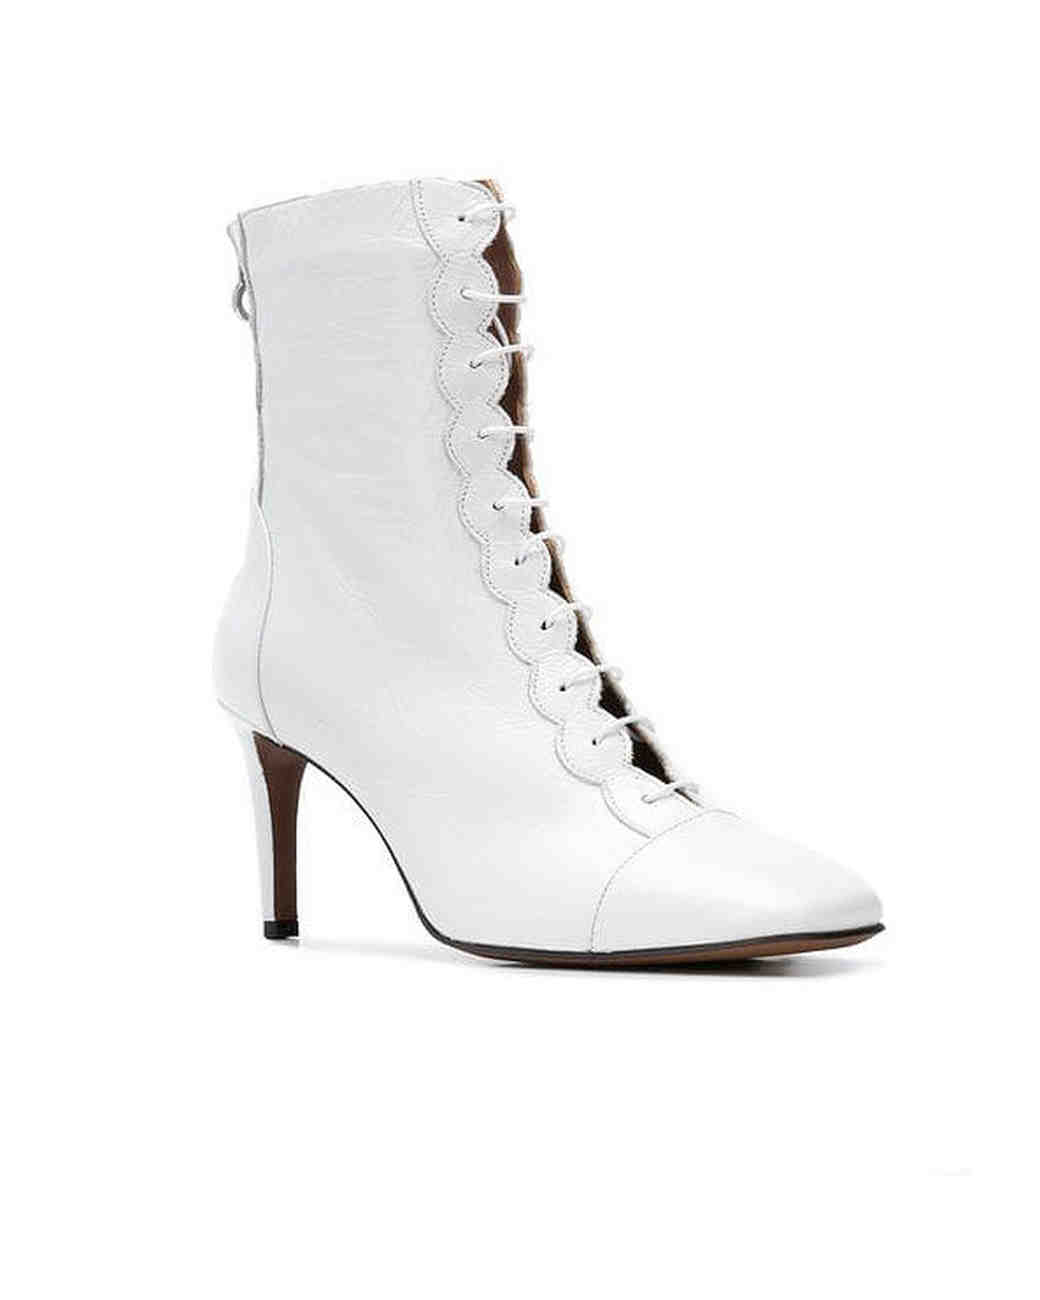 white bridal booties lautre chose front zip heel